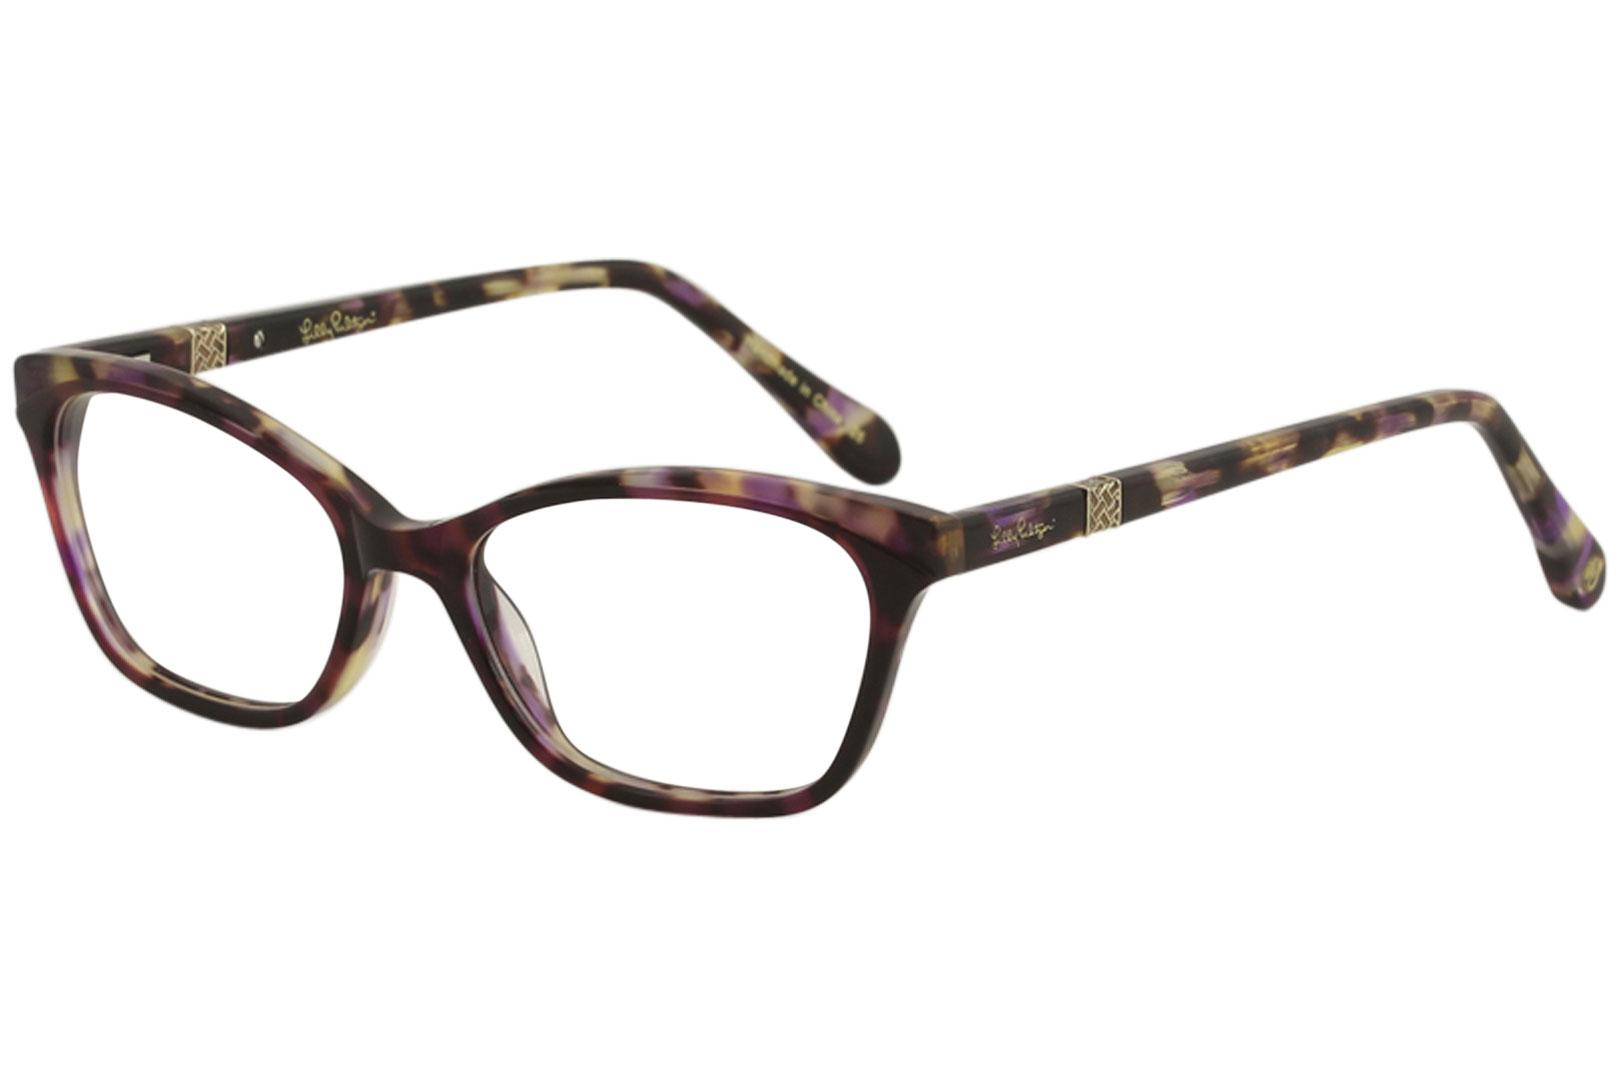 7f6d25d593a Lilly Pulitzer Women s Eyeglasses Duval Full Rim Optical Frame by Lilly  Pulitzer